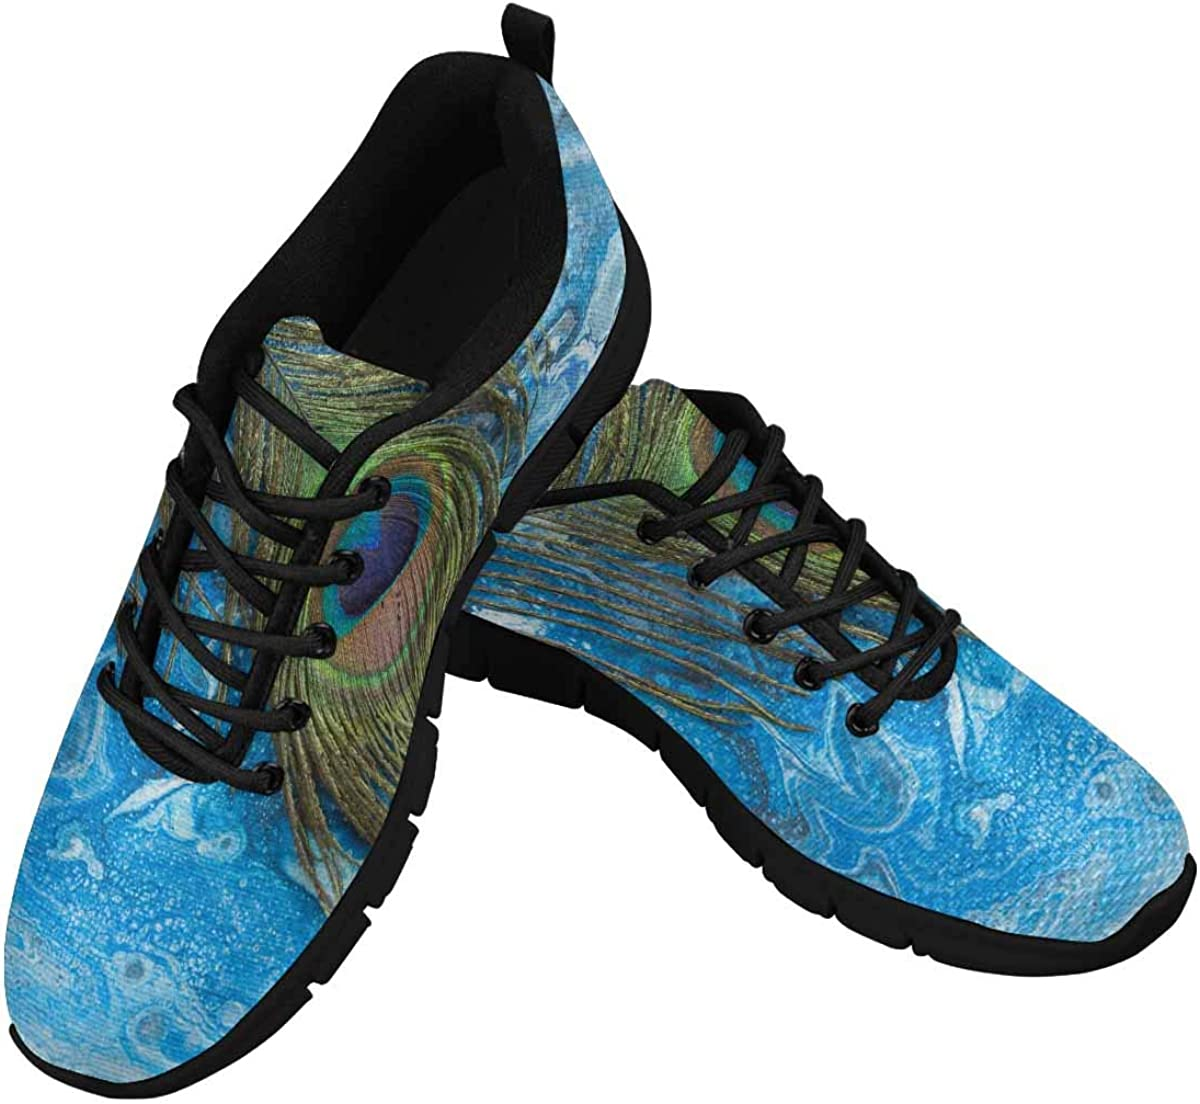 INTERESTPRINT Peacock Feather Blue Women's Breathable Non Slip Sneakers